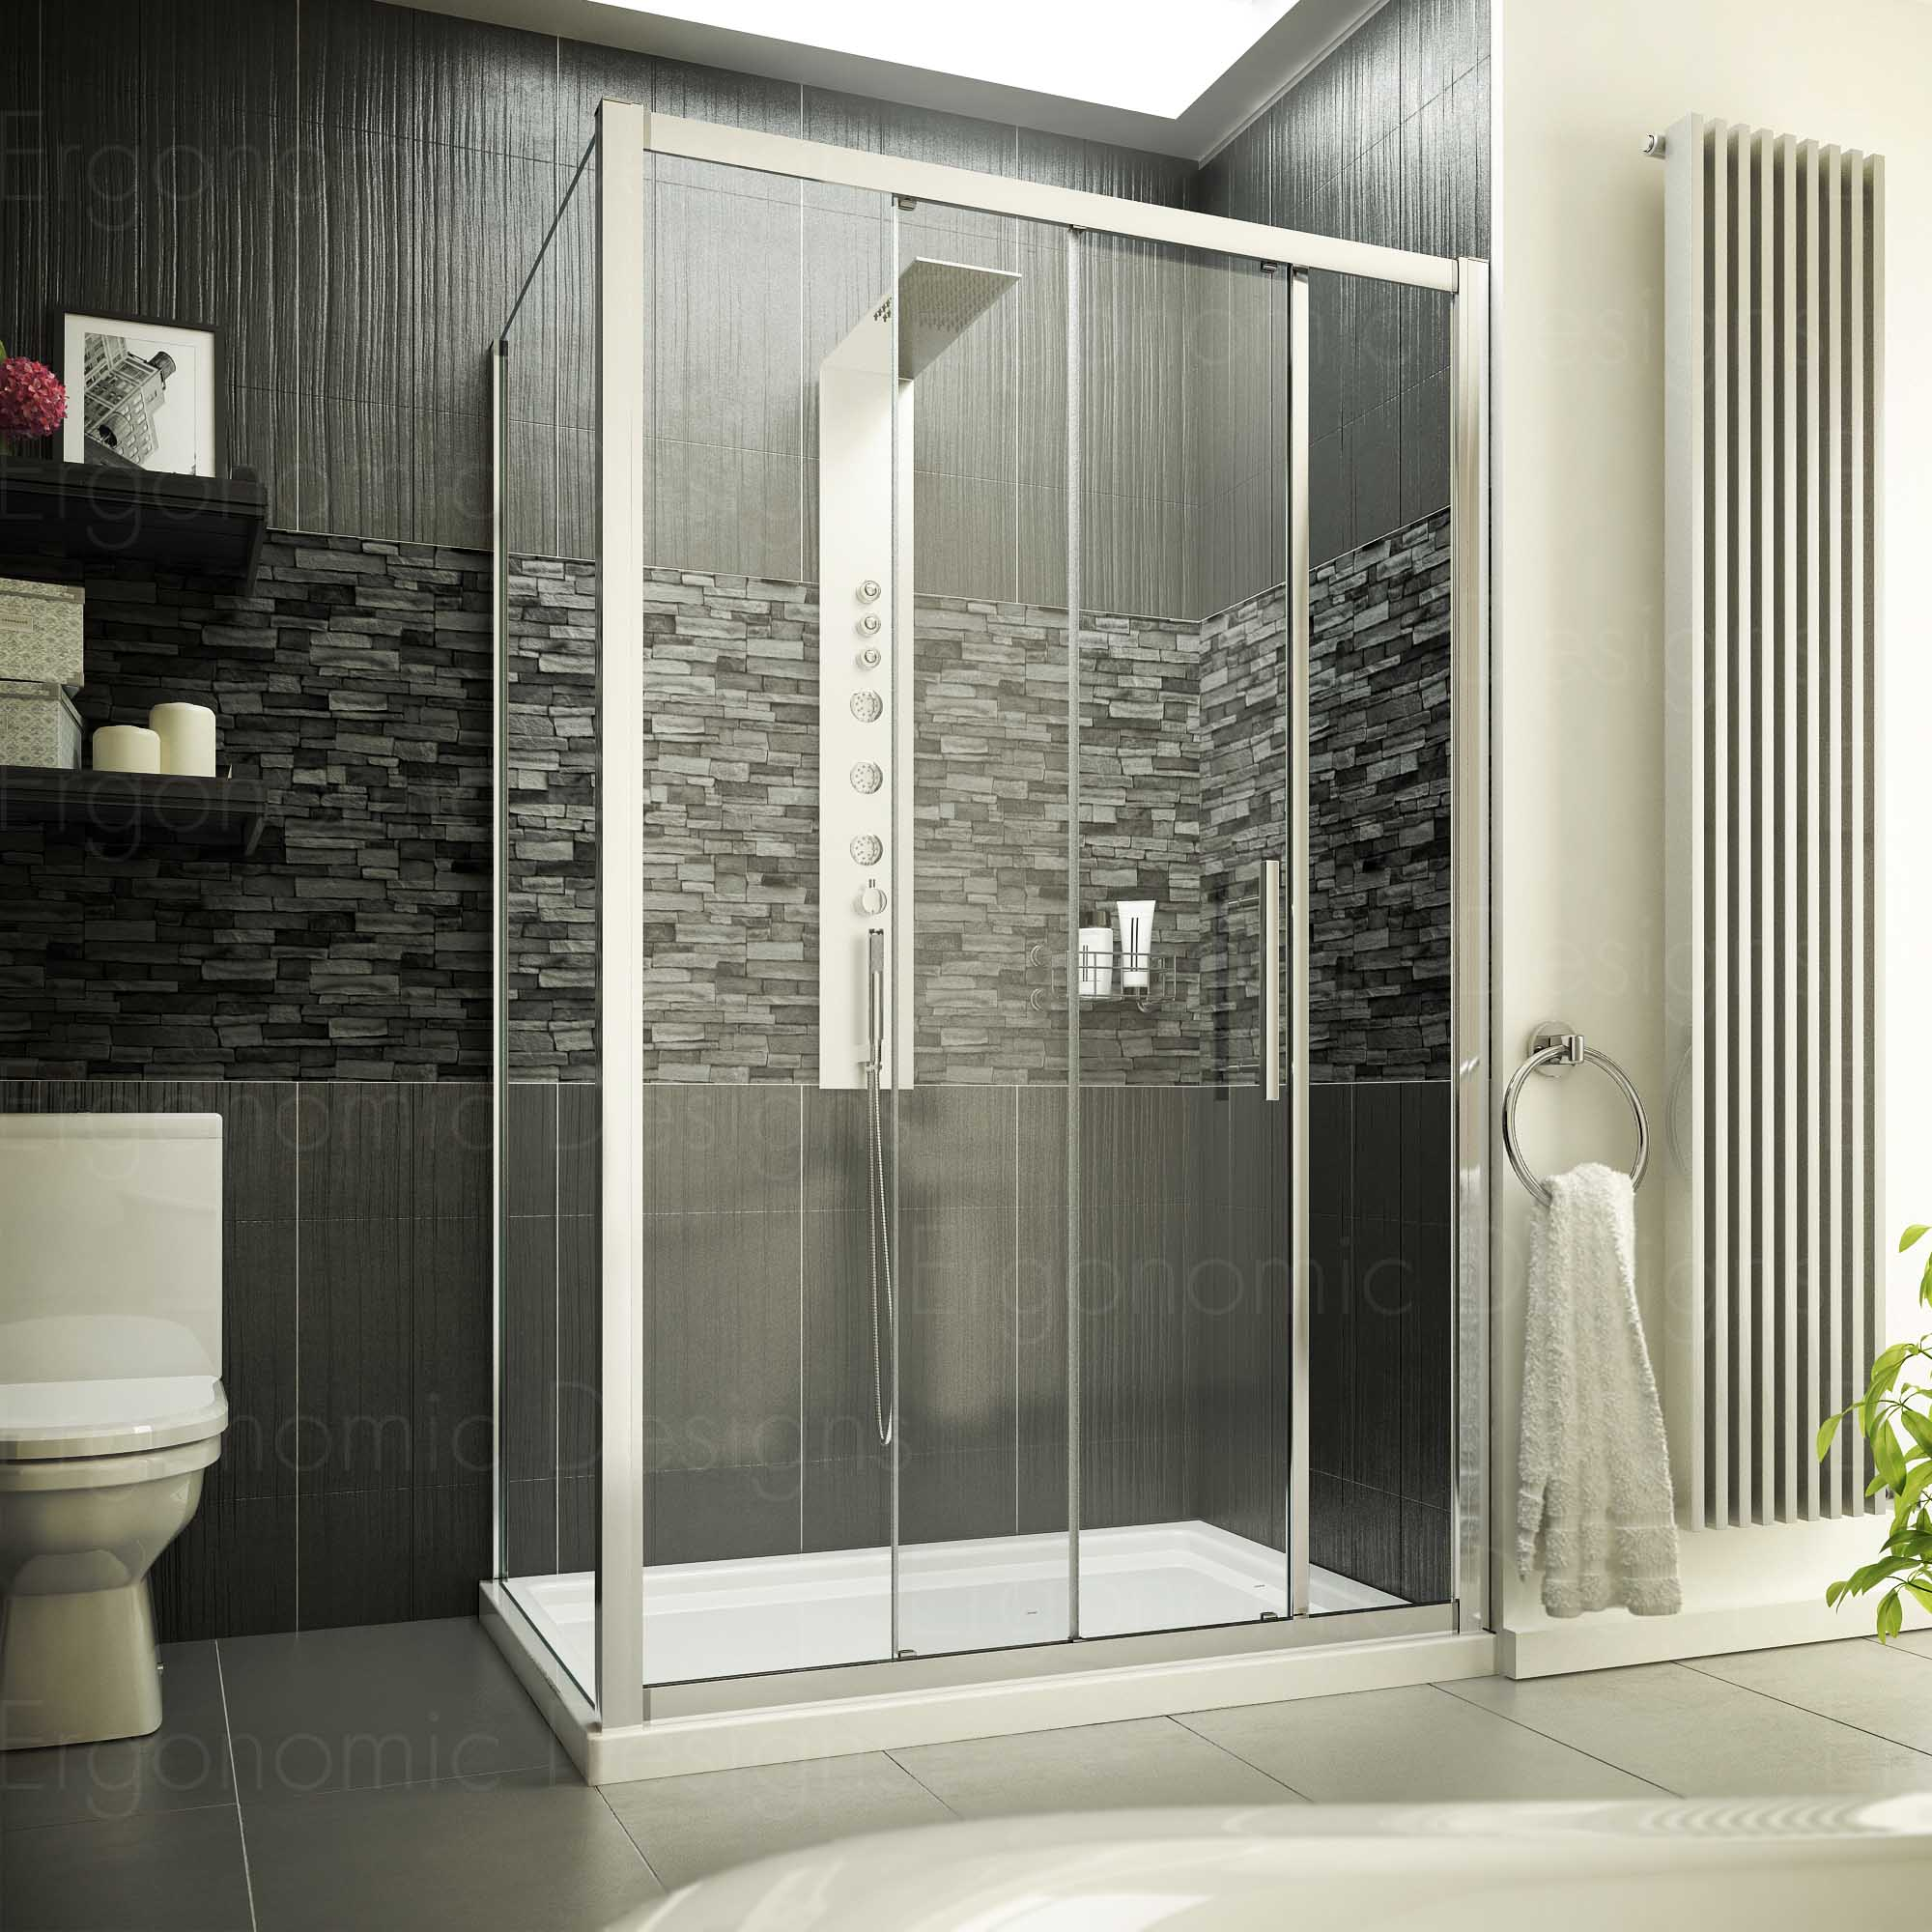 New 1200 x 700 Sliding Door Shower Enclosure Cubicle with 8mm Easy ...